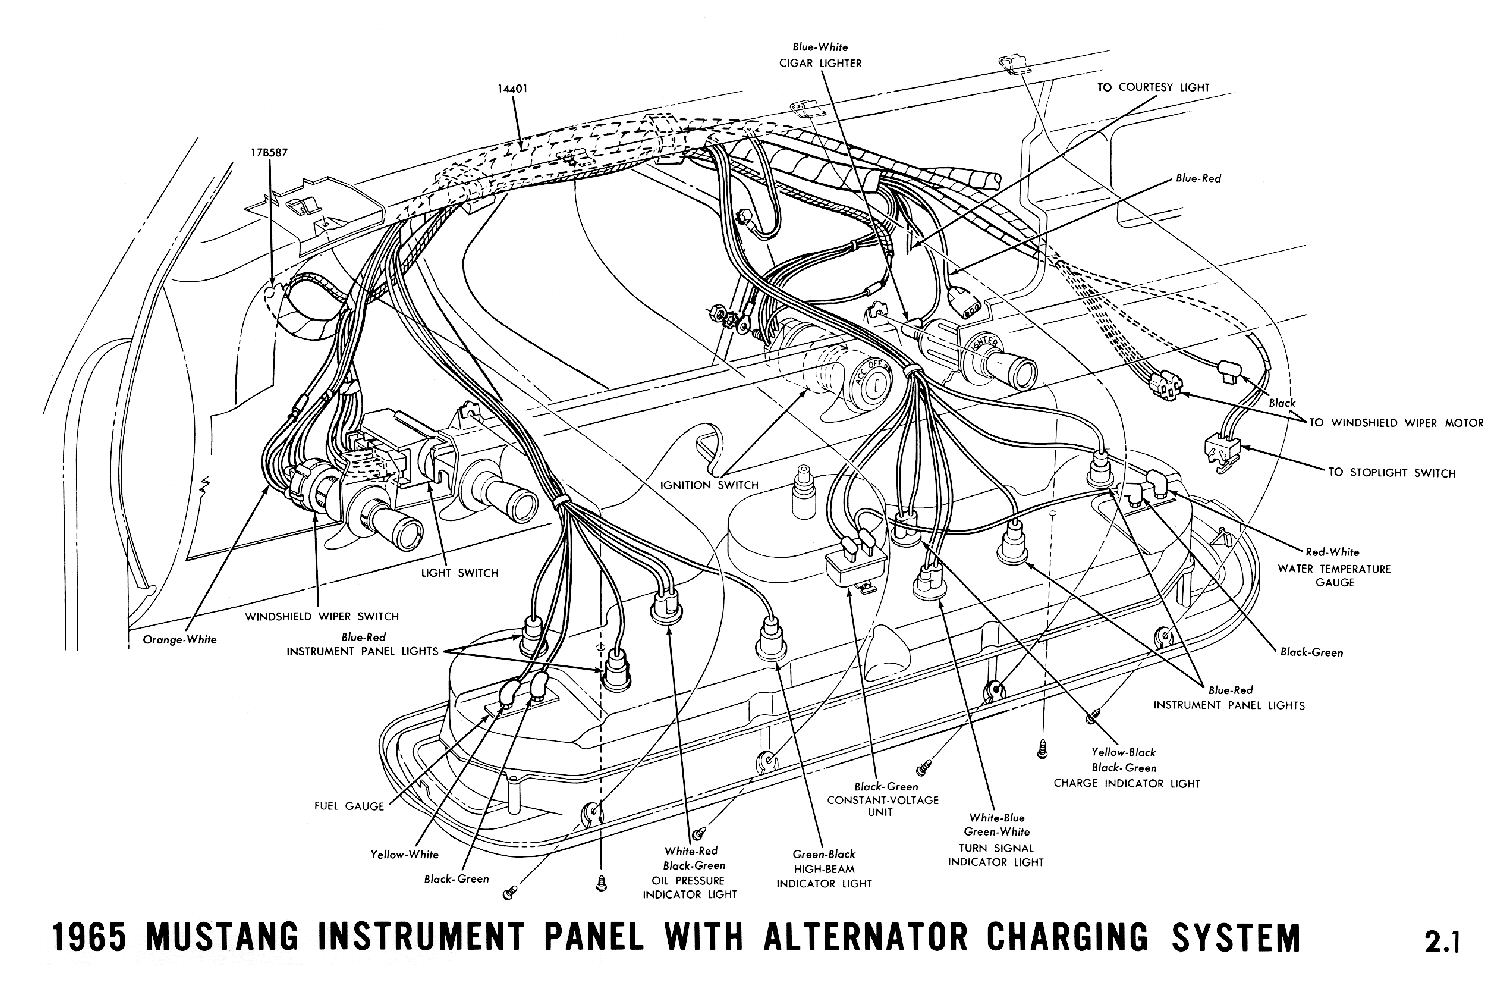 1965 mustang wiring diagrams average joe restoration rh averagejoerestoration com 65 mustang horn wiring diagram 65 mustang alternator wiring diagram